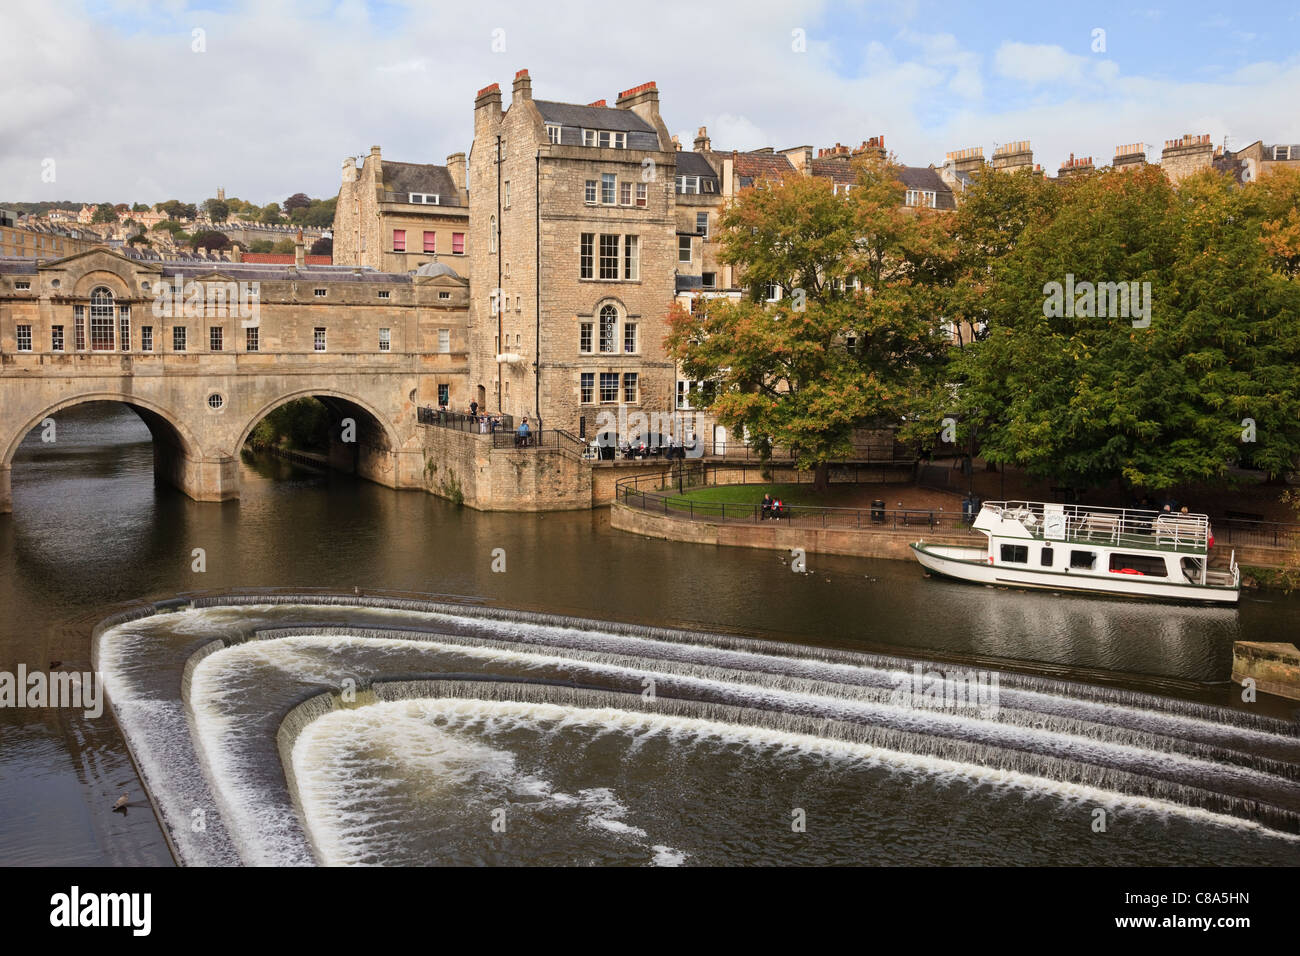 Horseshoe weir on the River Avon by Pulteney Bridge with shops on both sides Bath Somerset England UK Great Britain. - Stock Image